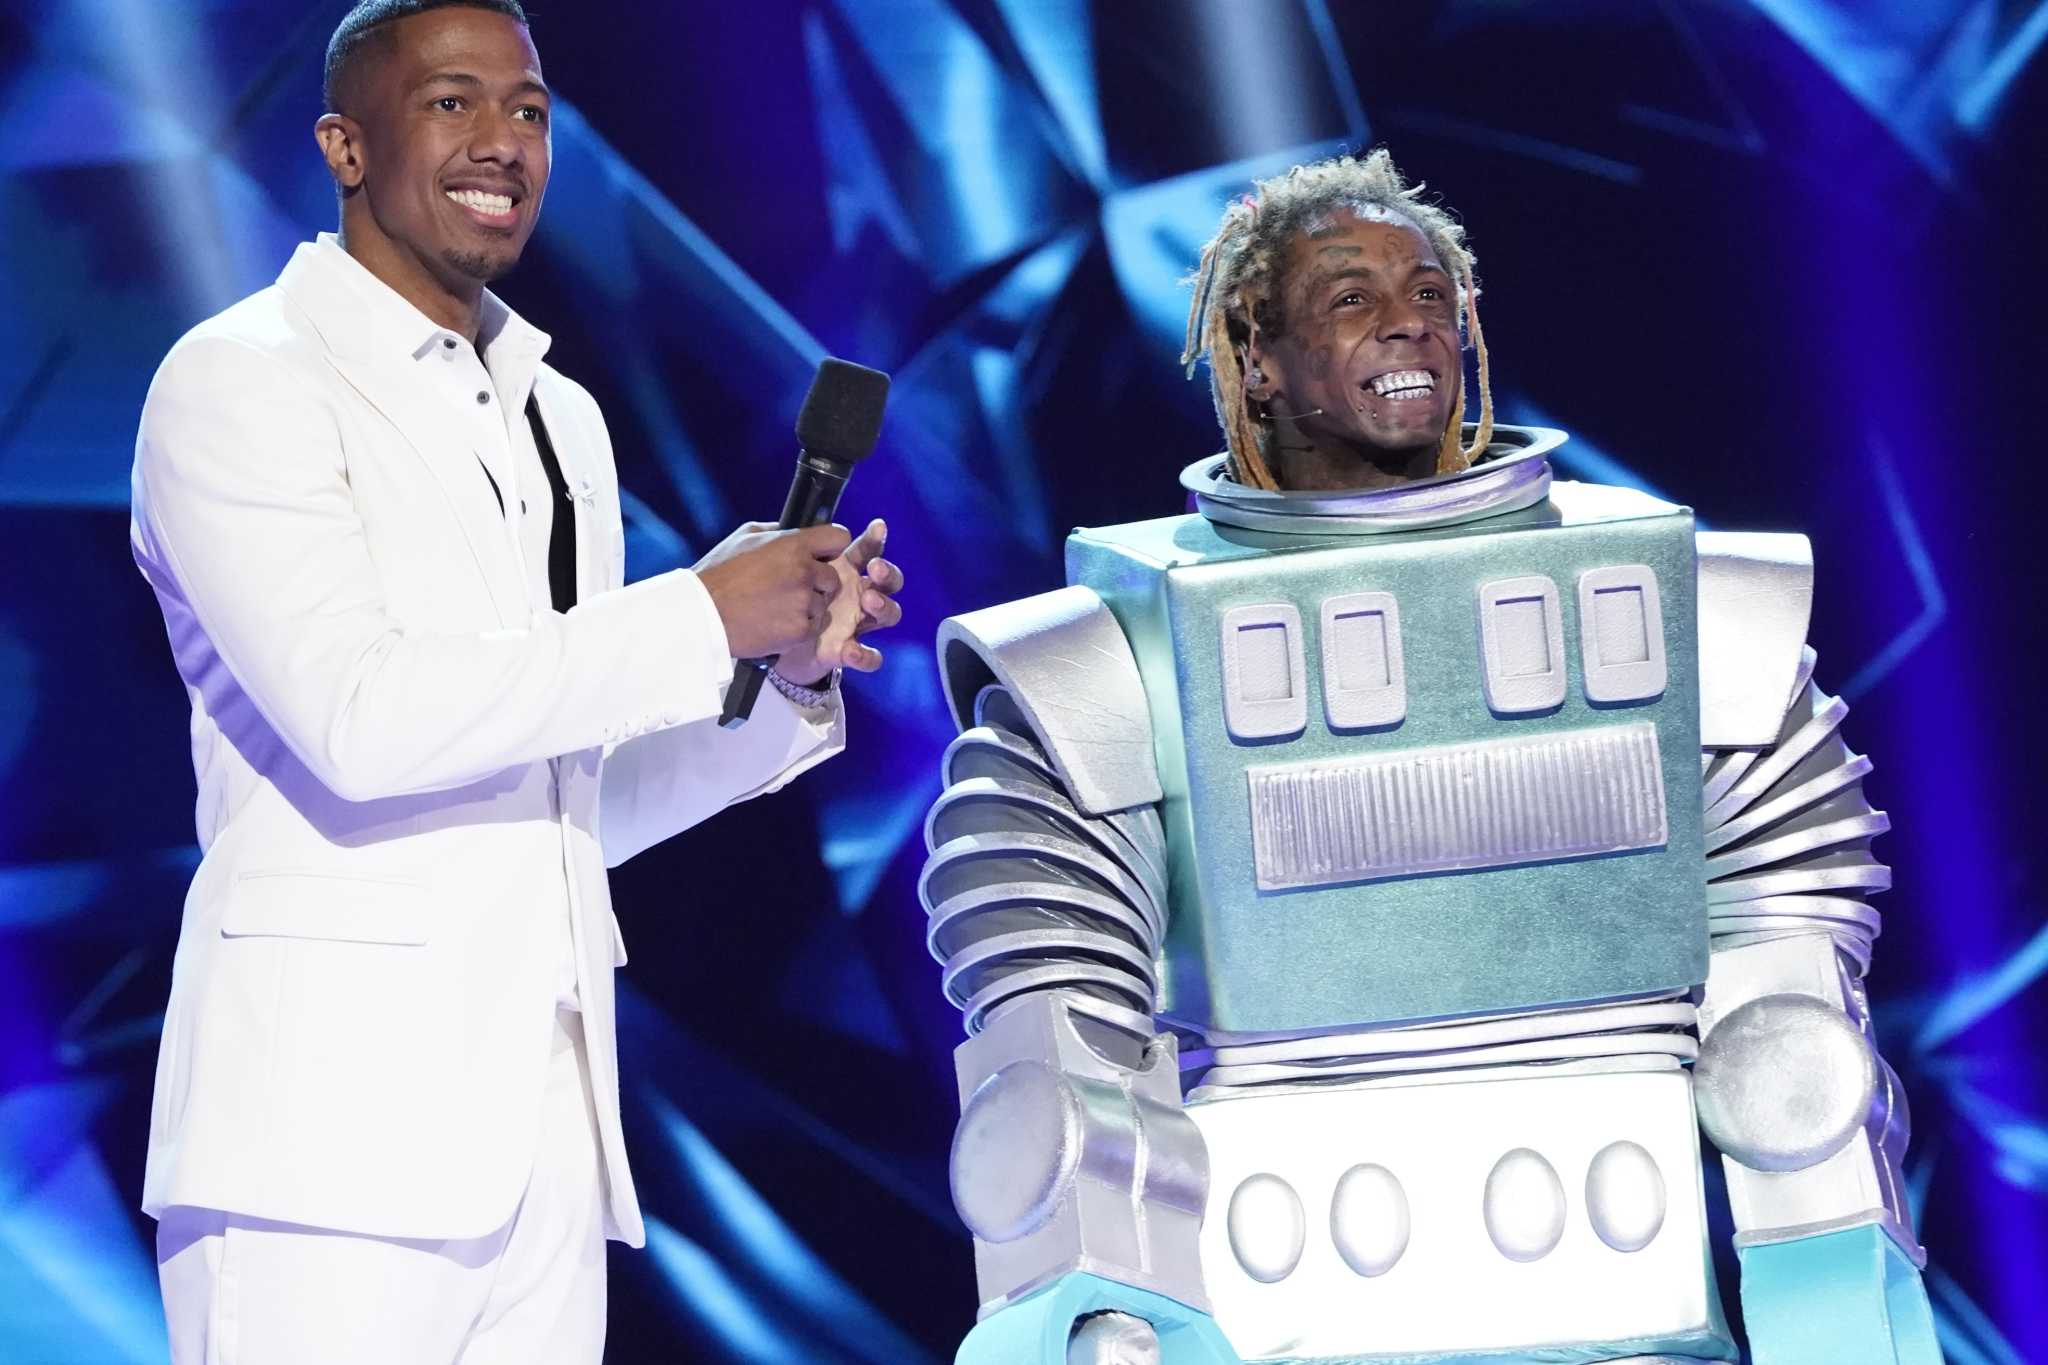 'The Masked Singer' is going on tour and coming to Sugar Land